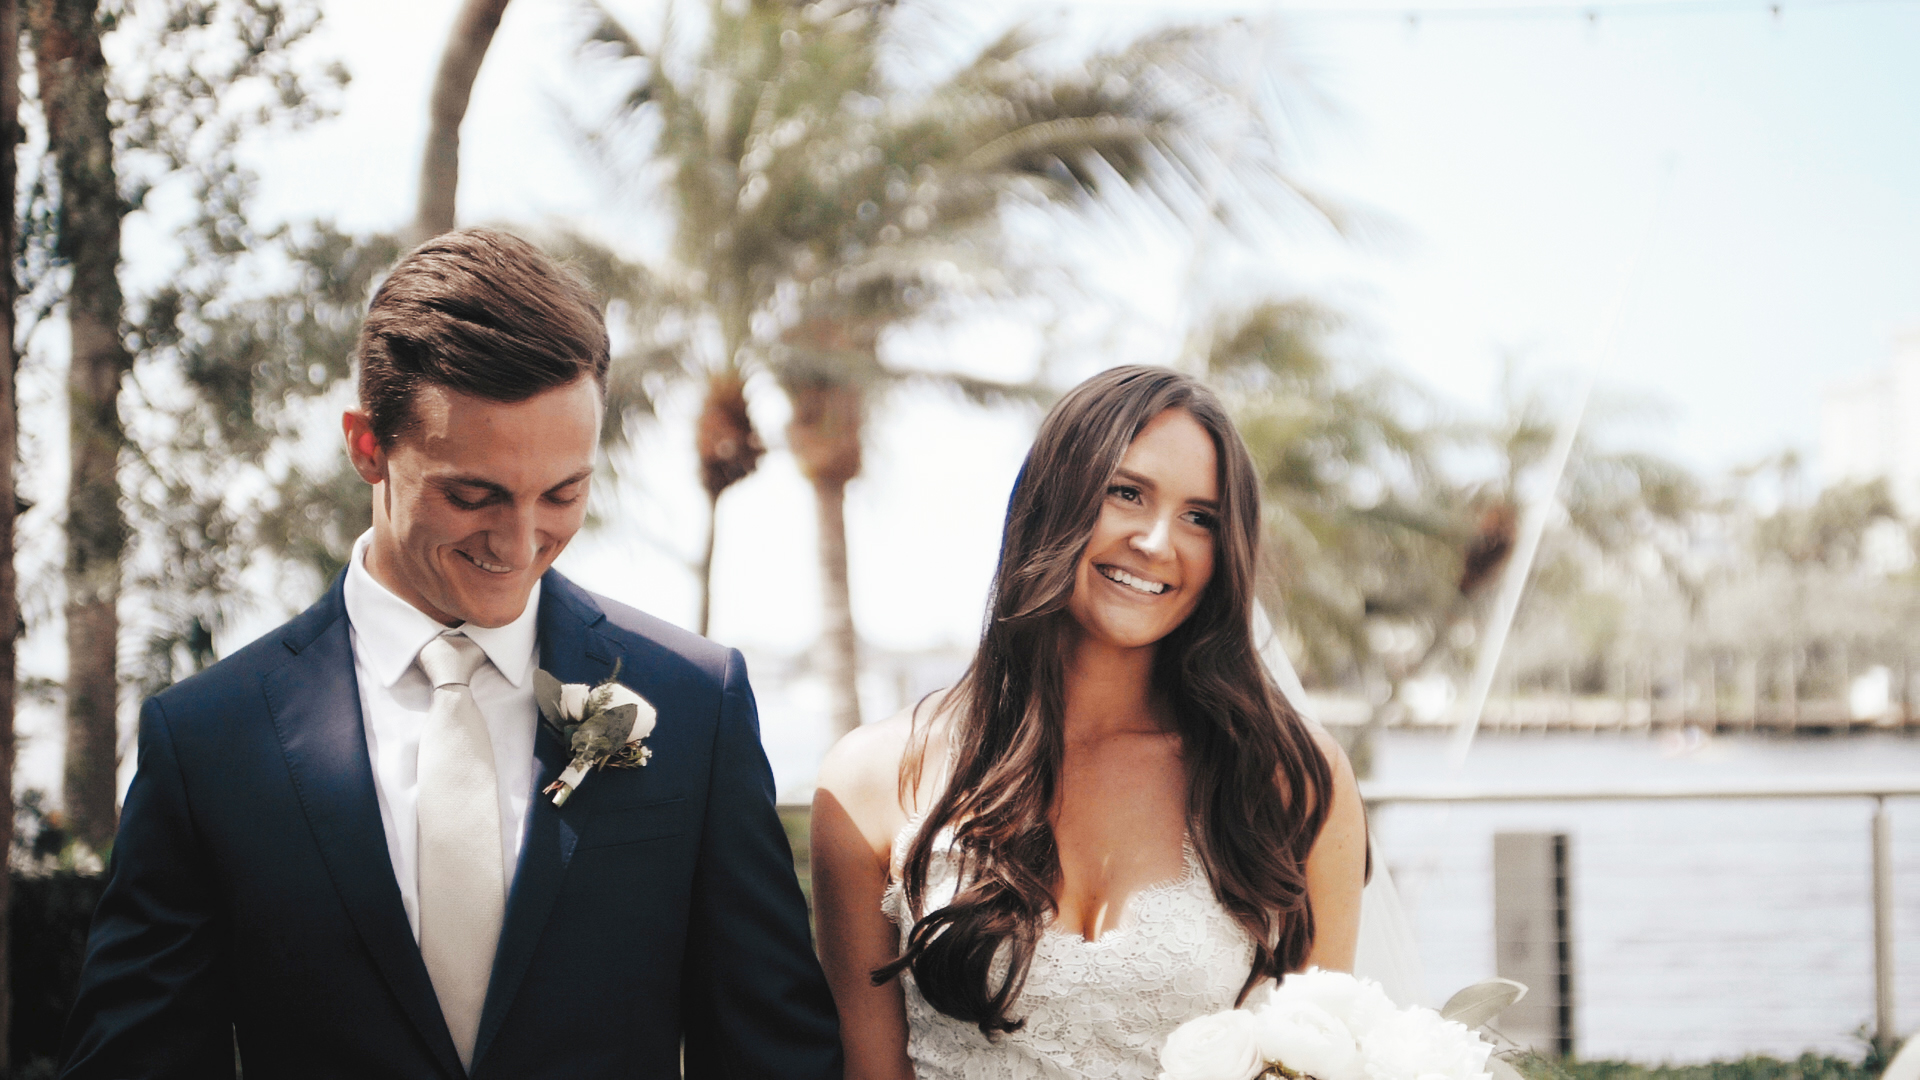 Brooke + Clark | Boca Raton, Florida | The Addison of Boca Raton